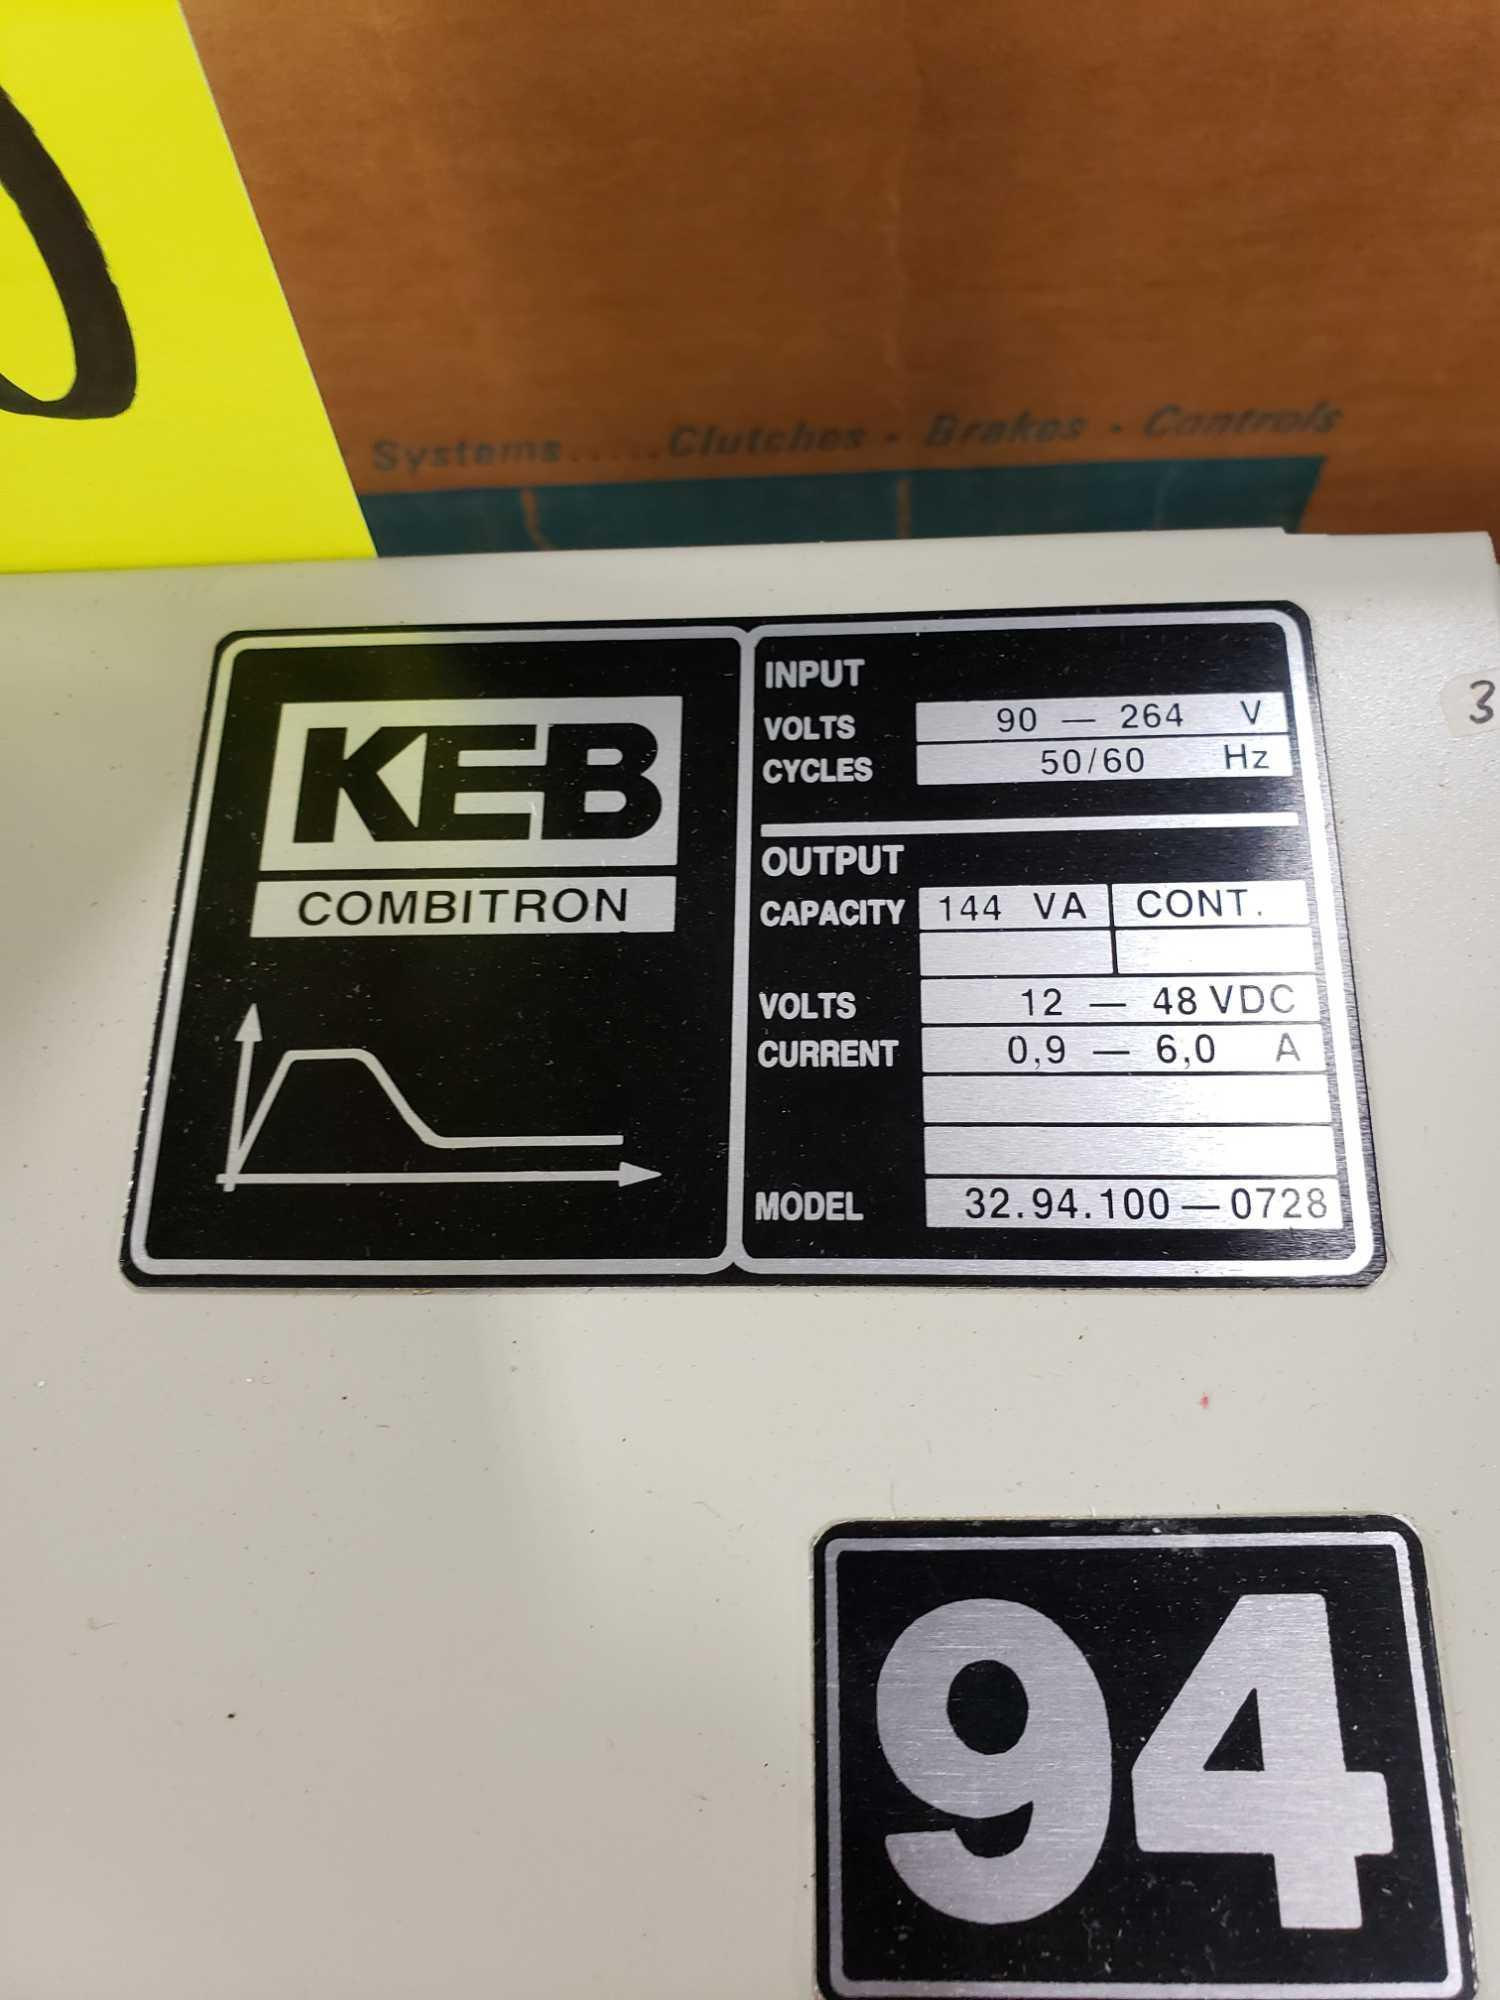 KEB Combitron drive model 32.94.100-0728, 90-264v input, 12-48vdc volt output. New as pictured. - Image 2 of 3